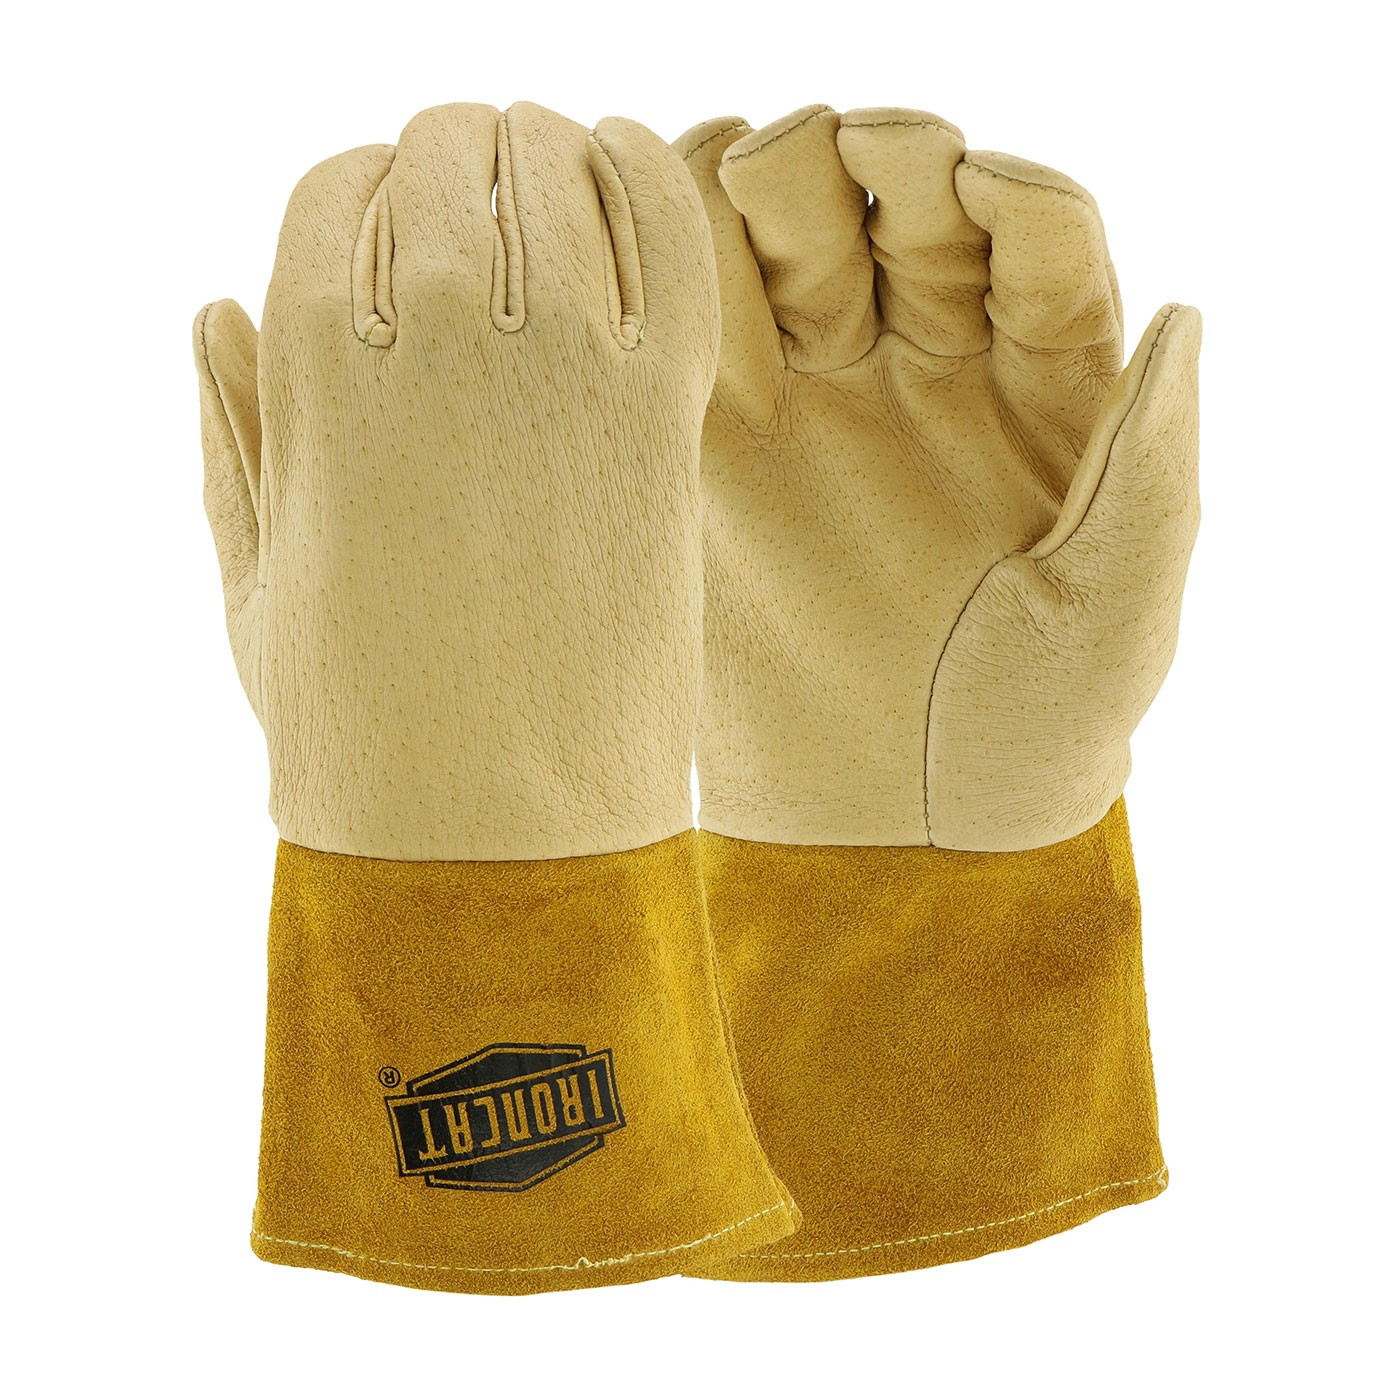 Ironcat® Ironcat® Premium Top Grain Pigskin Leather Mig Welder's Glove with Kevlar® Stitching - Split Leather Gauntlet Cuff  (#6021)